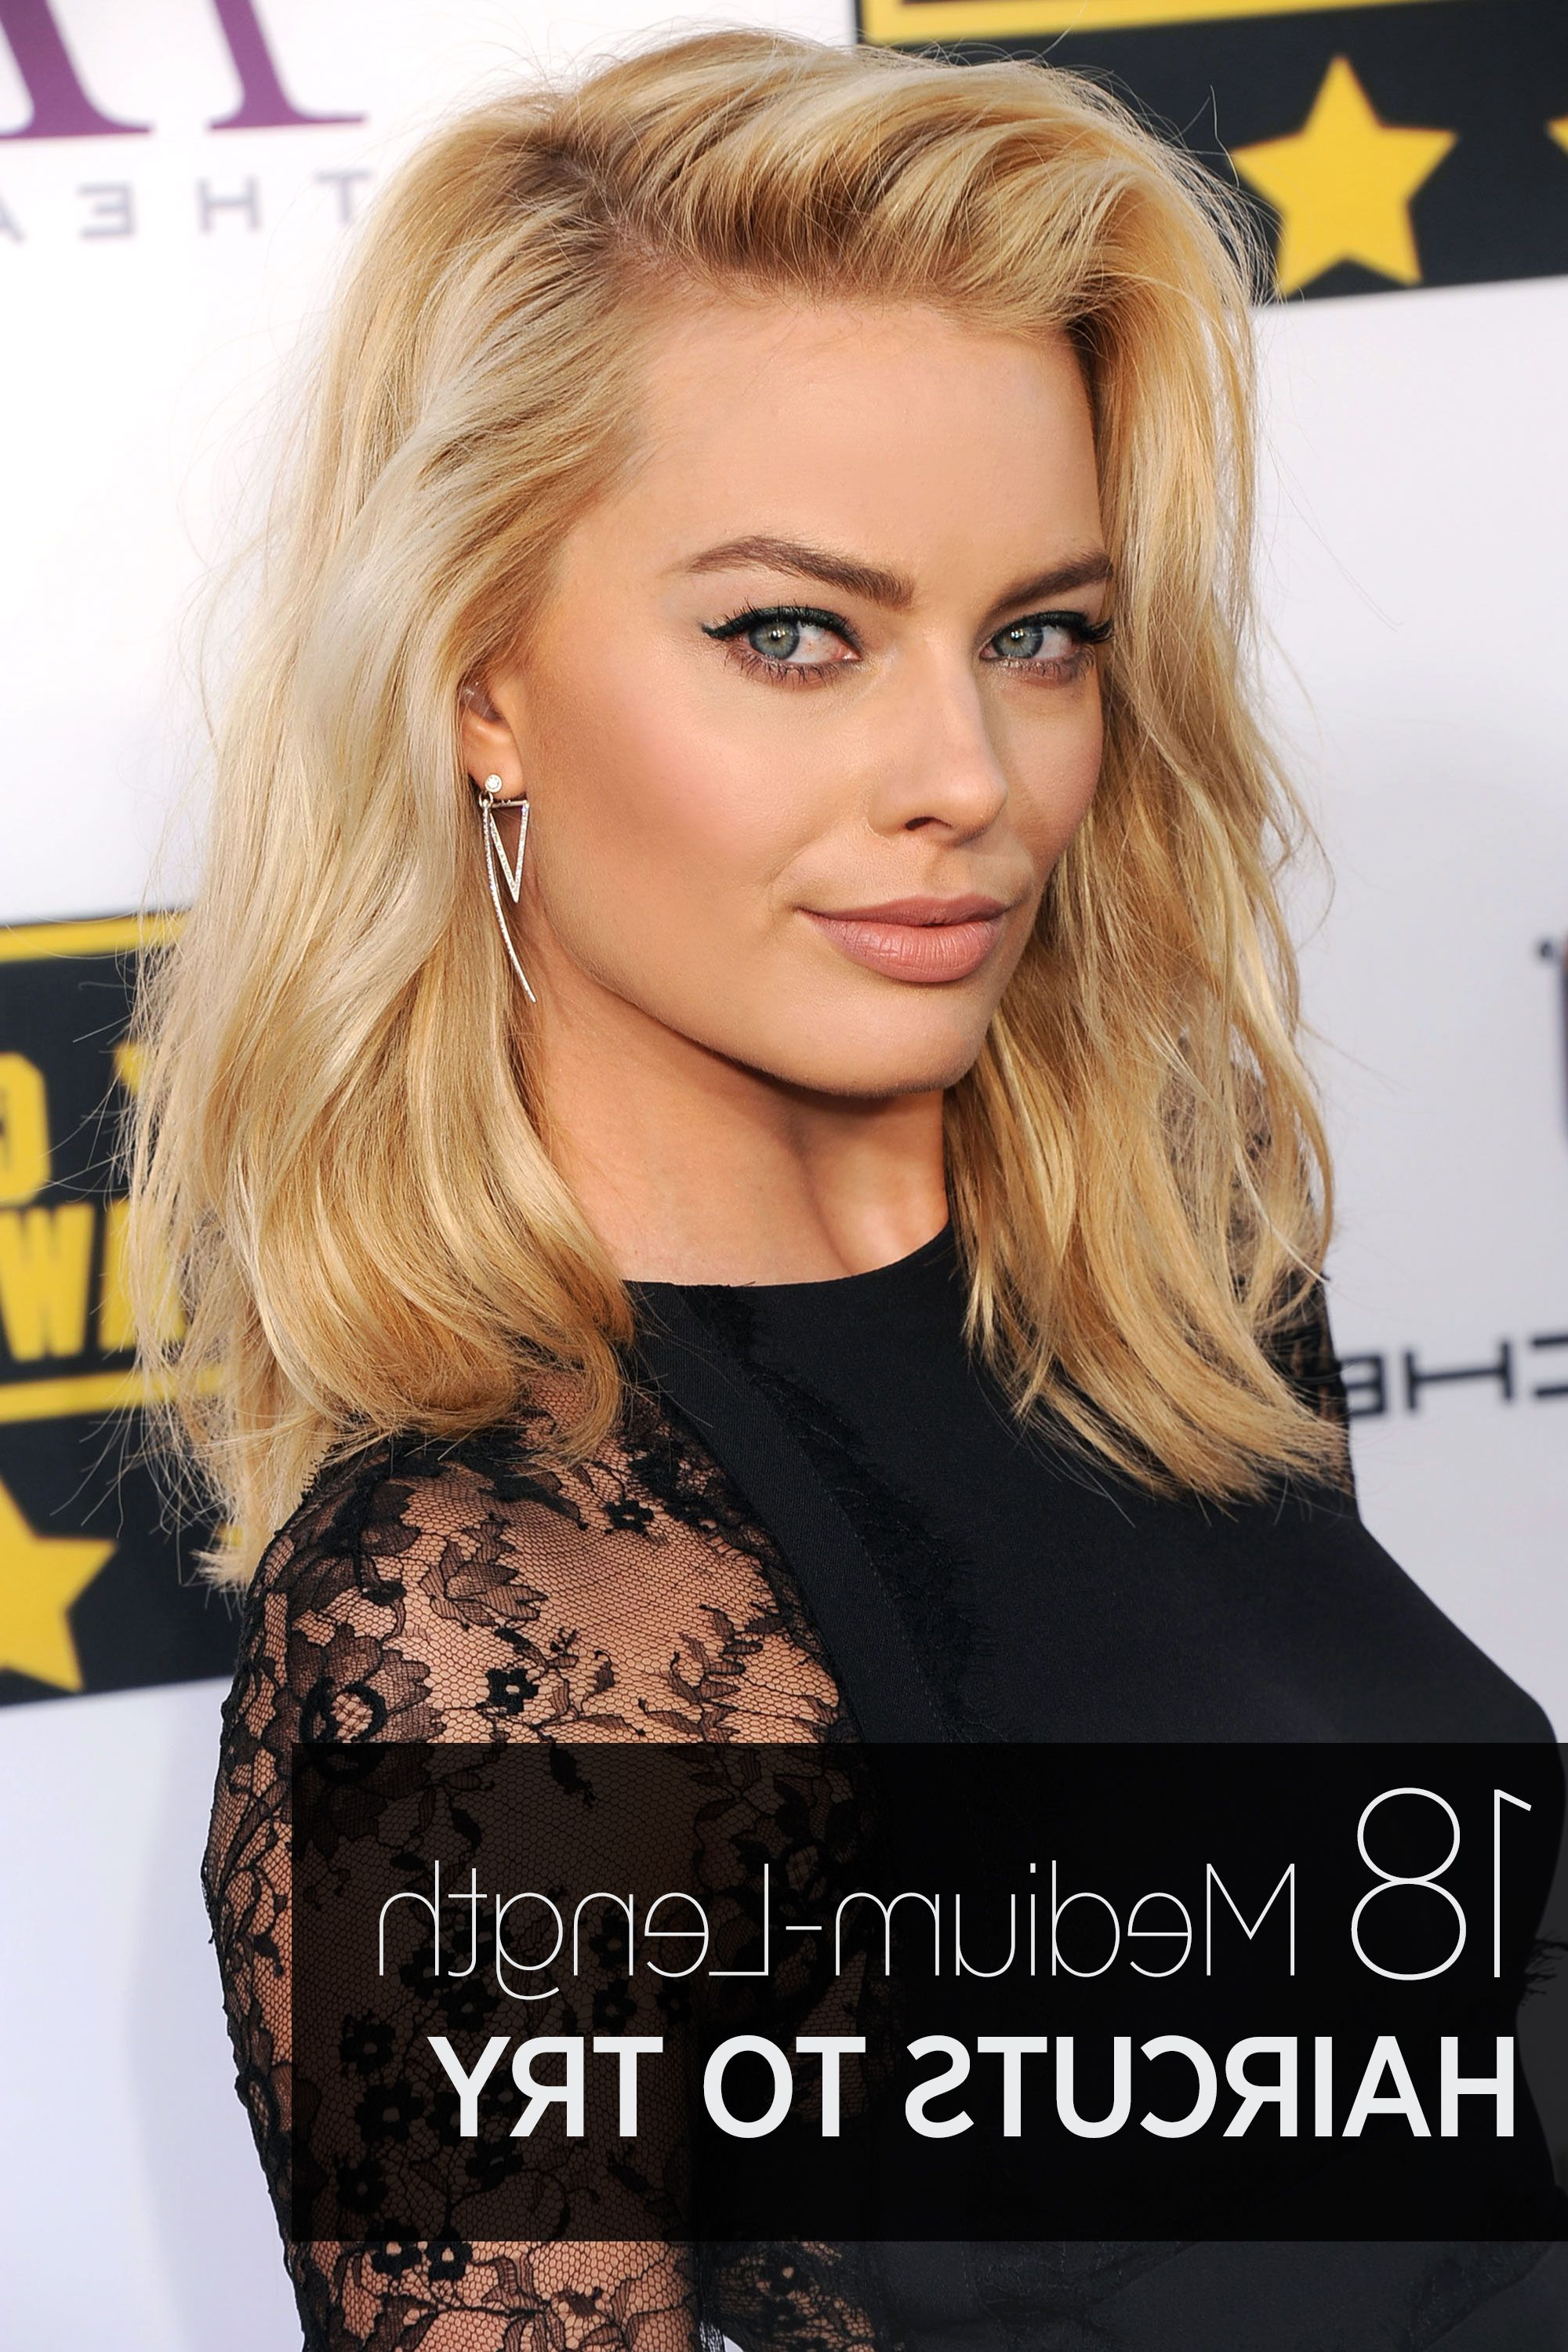 40 Best Medium Hairstyles – Celebrities With Shoulder Length Haircuts Inside Widely Used Medium Hairstyles (View 7 of 20)